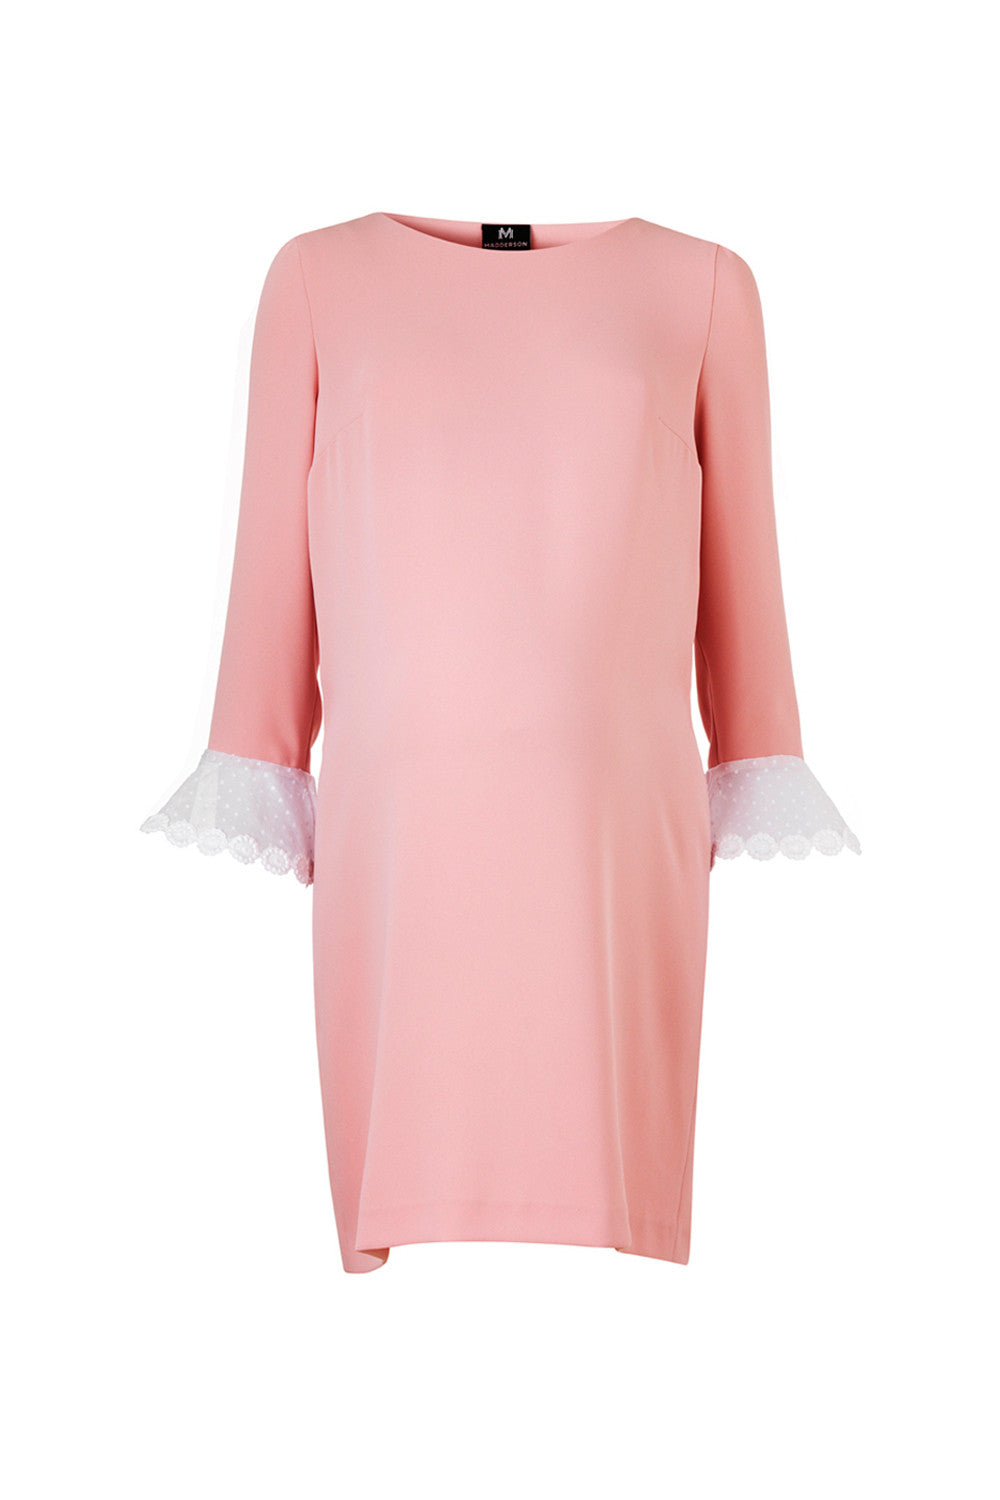 Lavinia Dress - Pink - Maternity Outlet - Madderson London